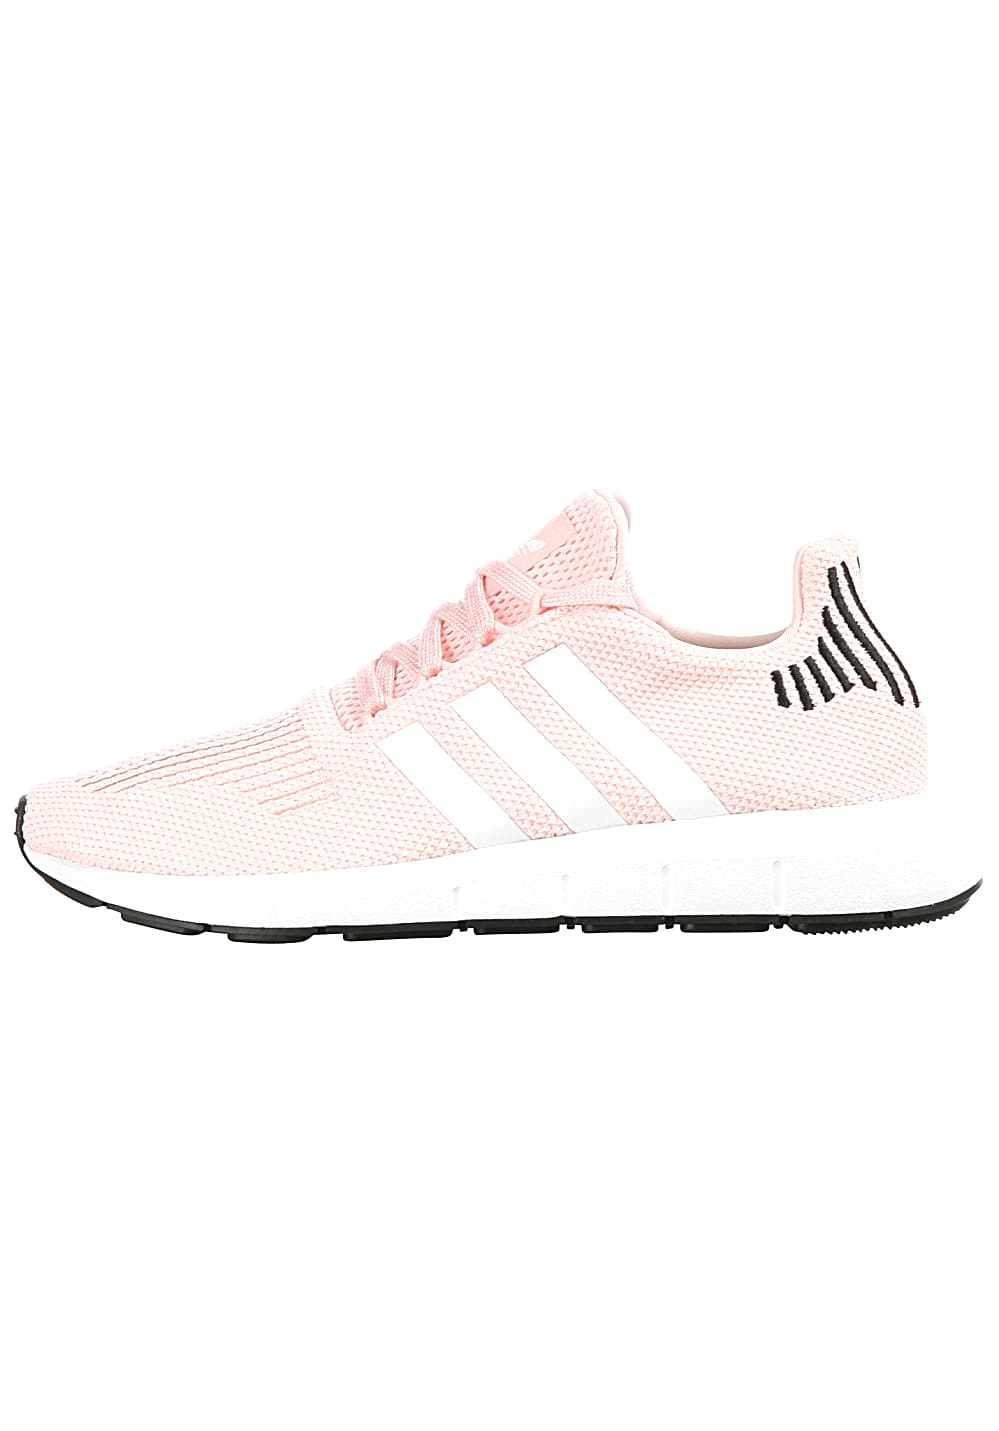 adidas Originals Swift Run - Sneaker für Damen - Pink